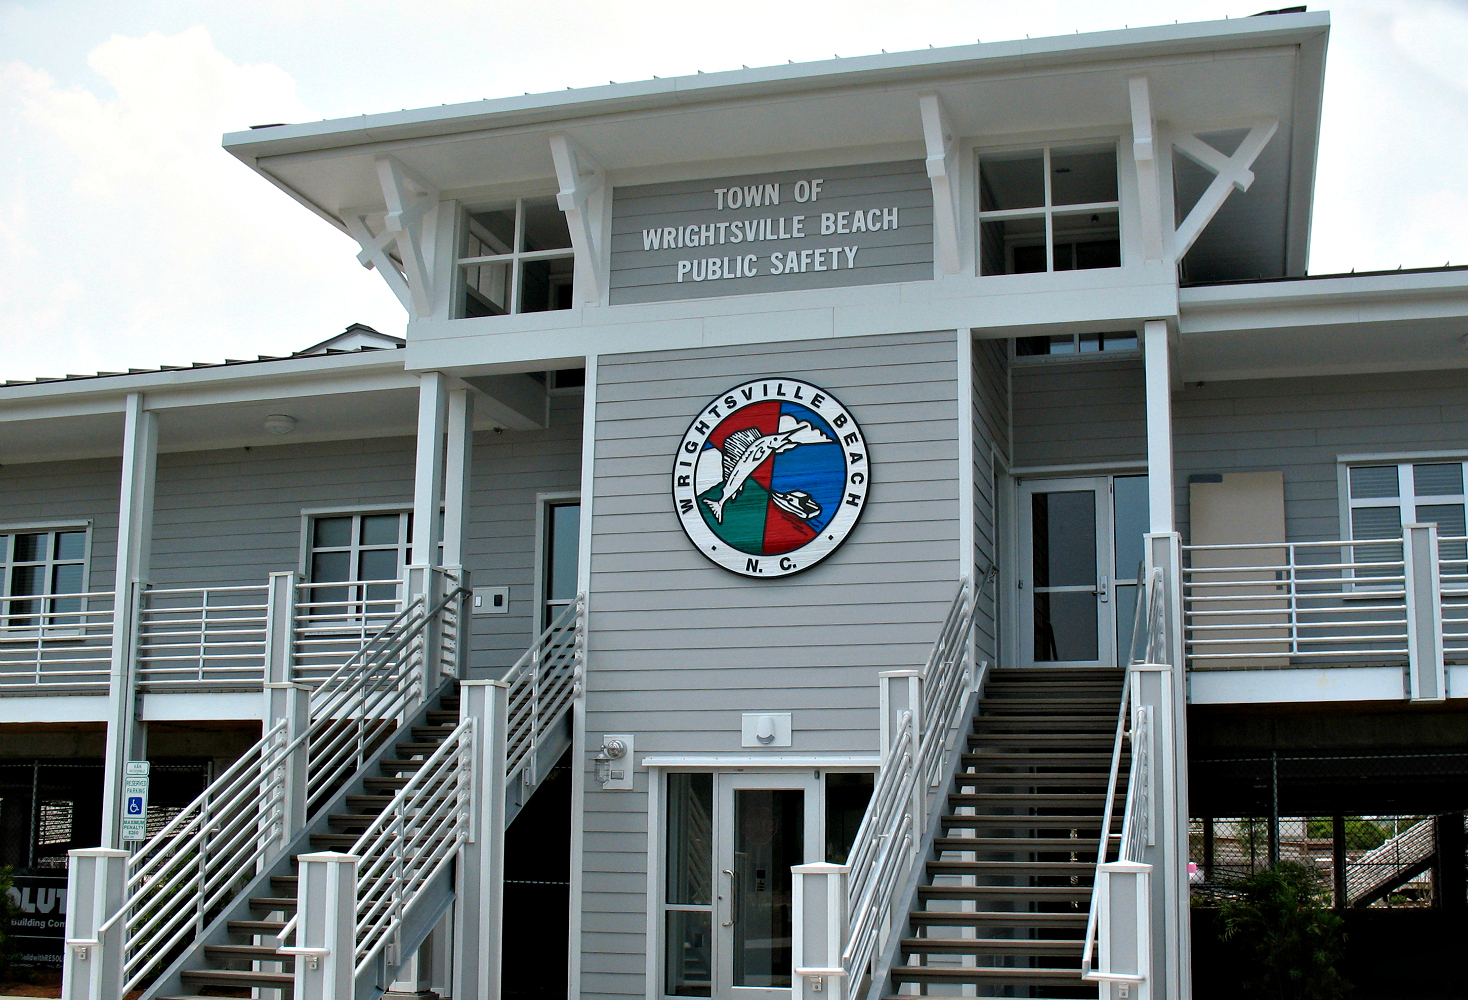 police fire department facility wrightsville beach